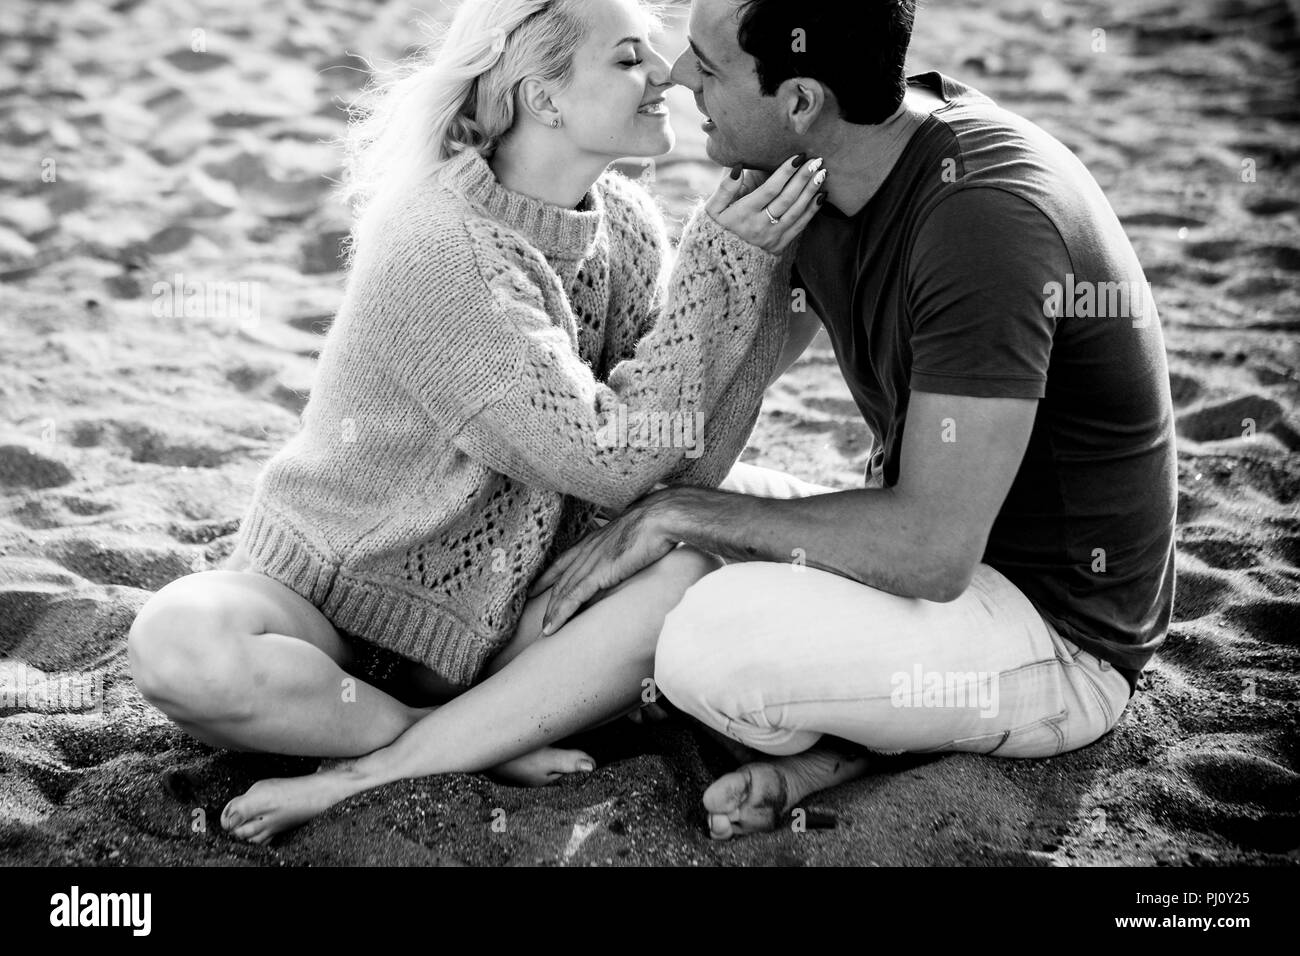 Beau modèle couple portrait jeune femme et l'homme rester amoureux hugging et assis sur la plage. blonde et des cheveux noirs en plein air leisu de relation Photo Stock